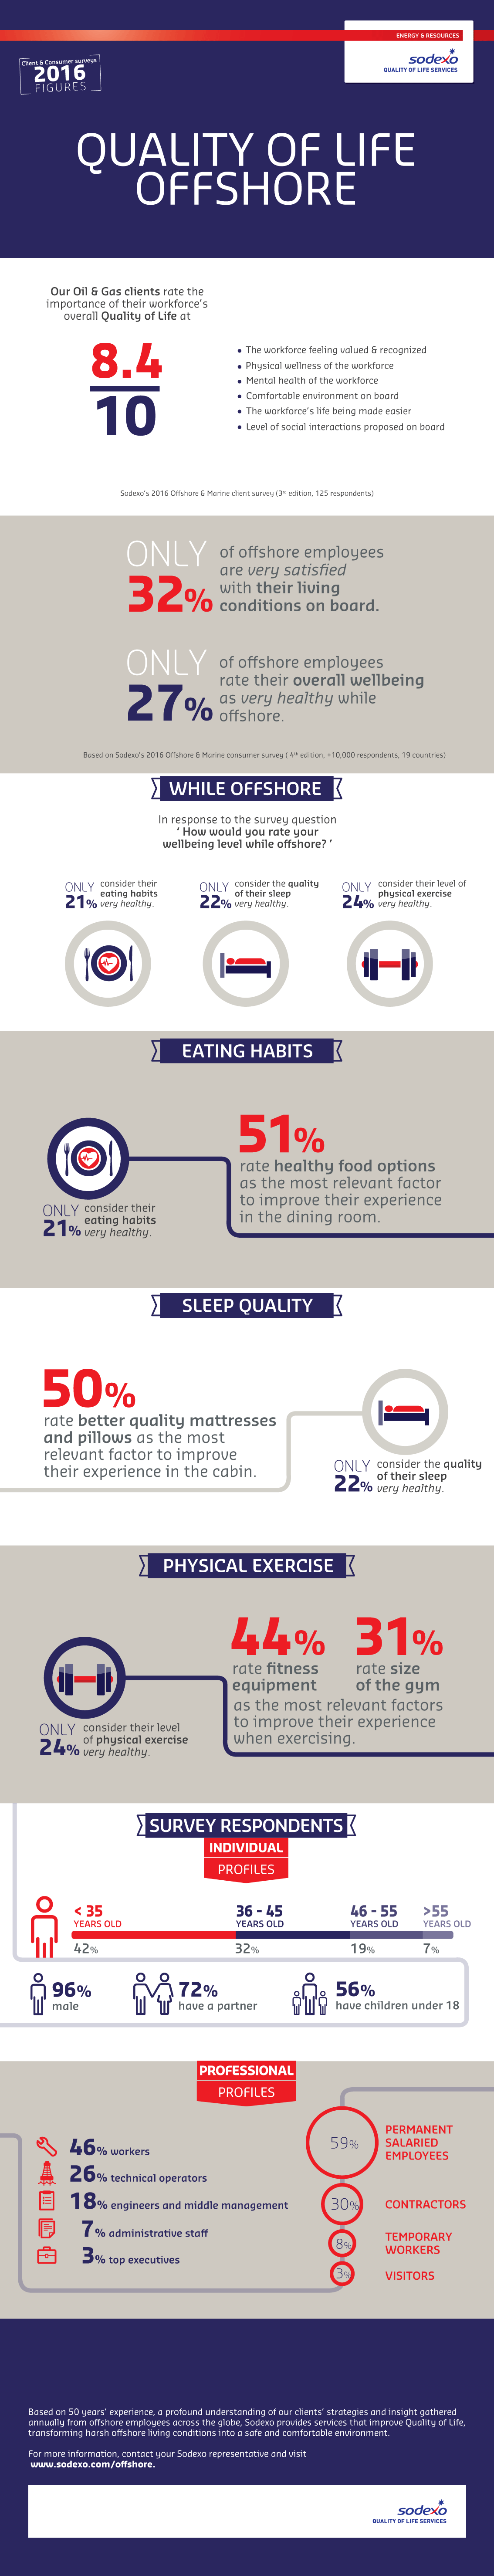 Sodexo Quality of Life for Offshore employees - Study 2016